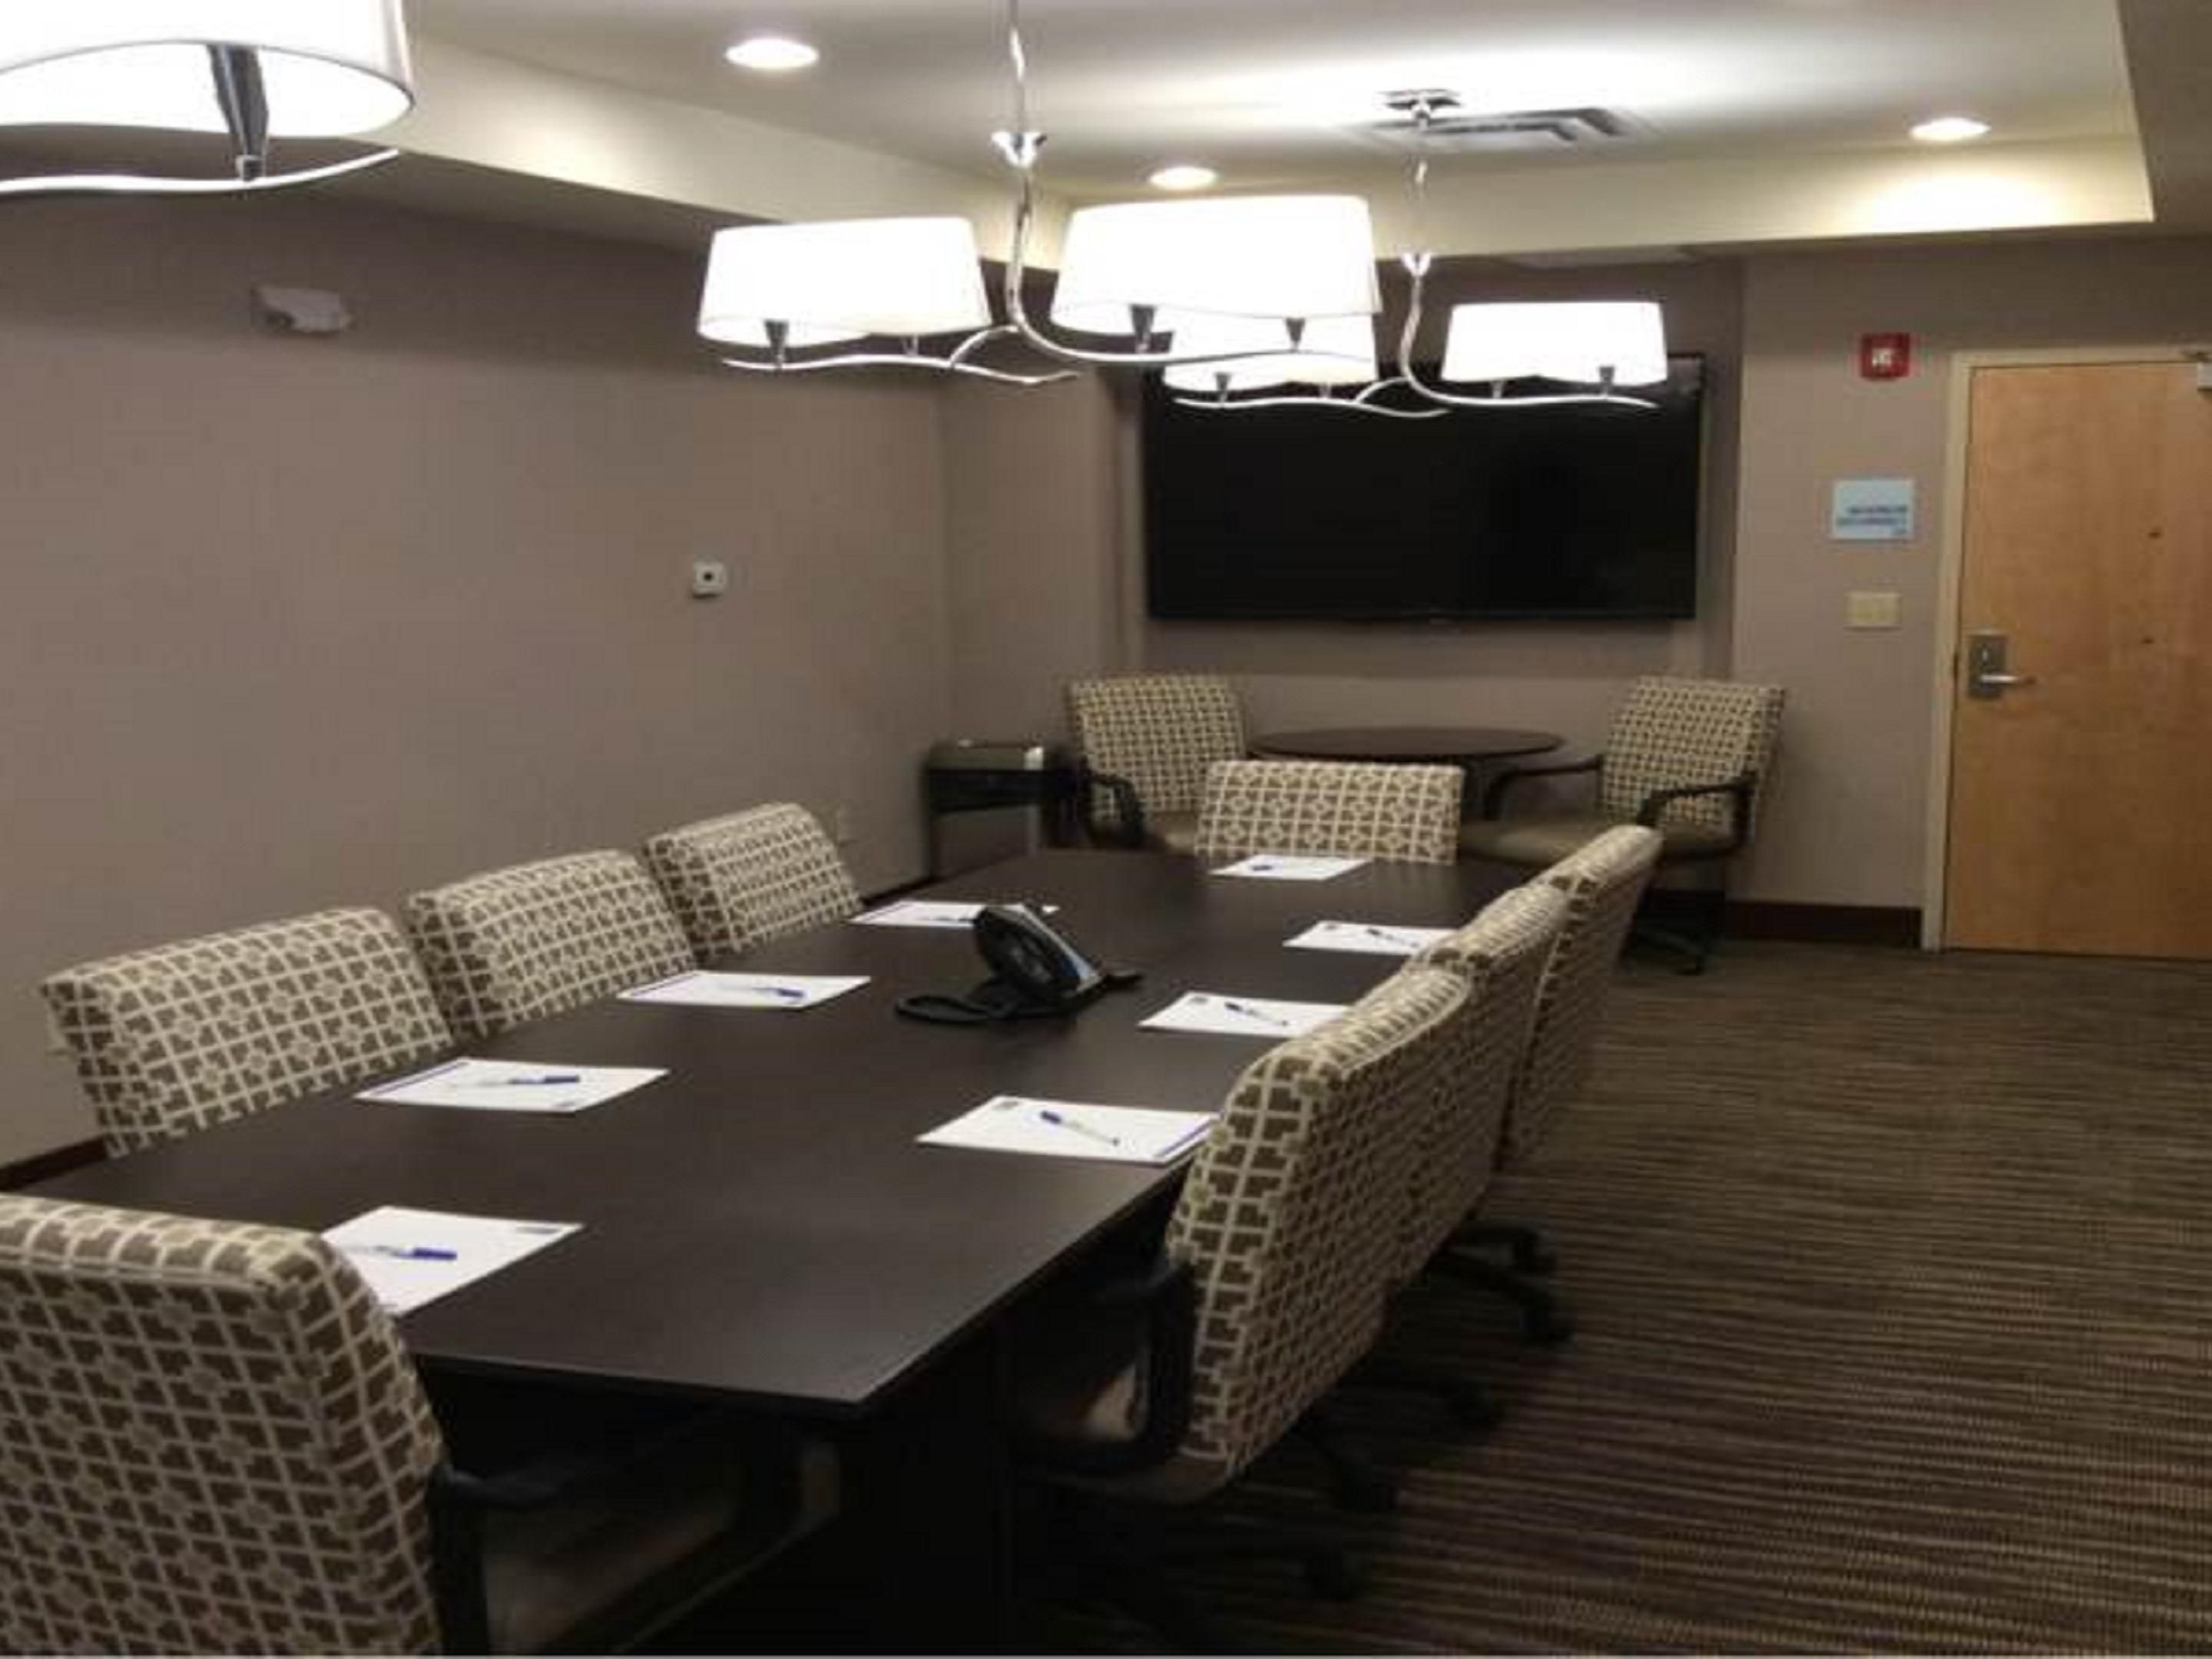 Board style meeting room equipped with Smart TV